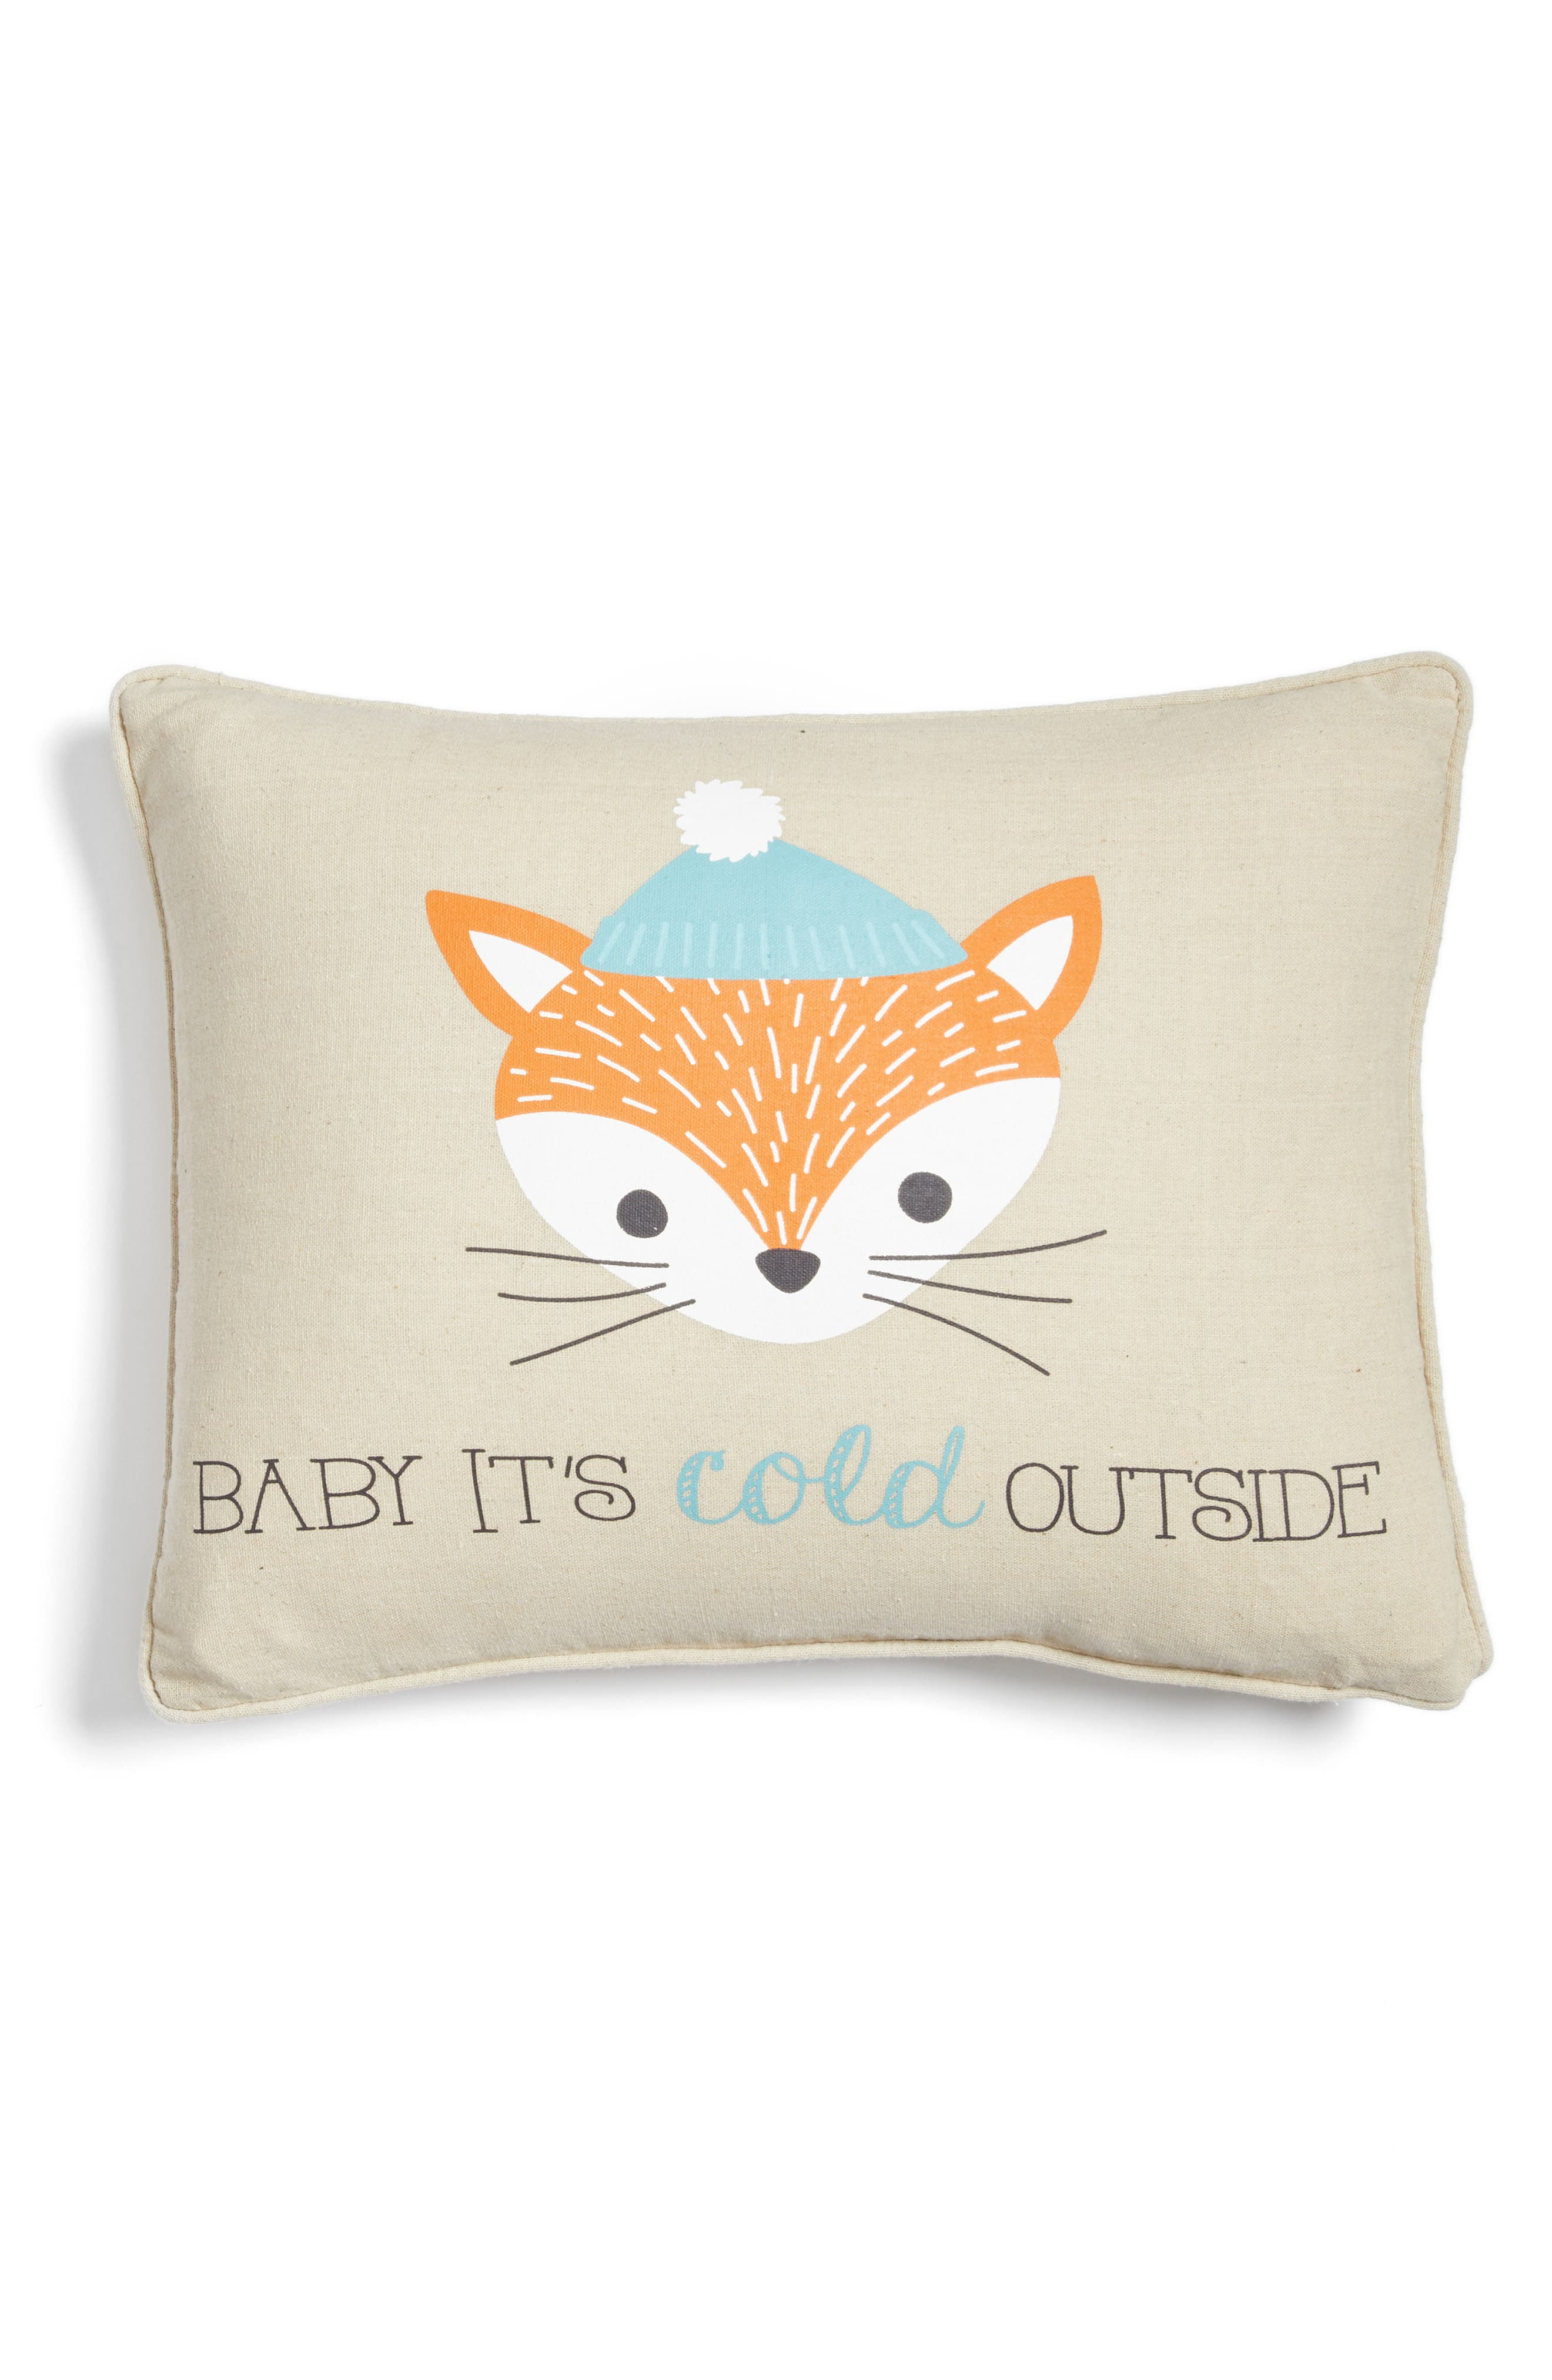 Baby It's Cold Outside Pillow,                         Main,                         color,